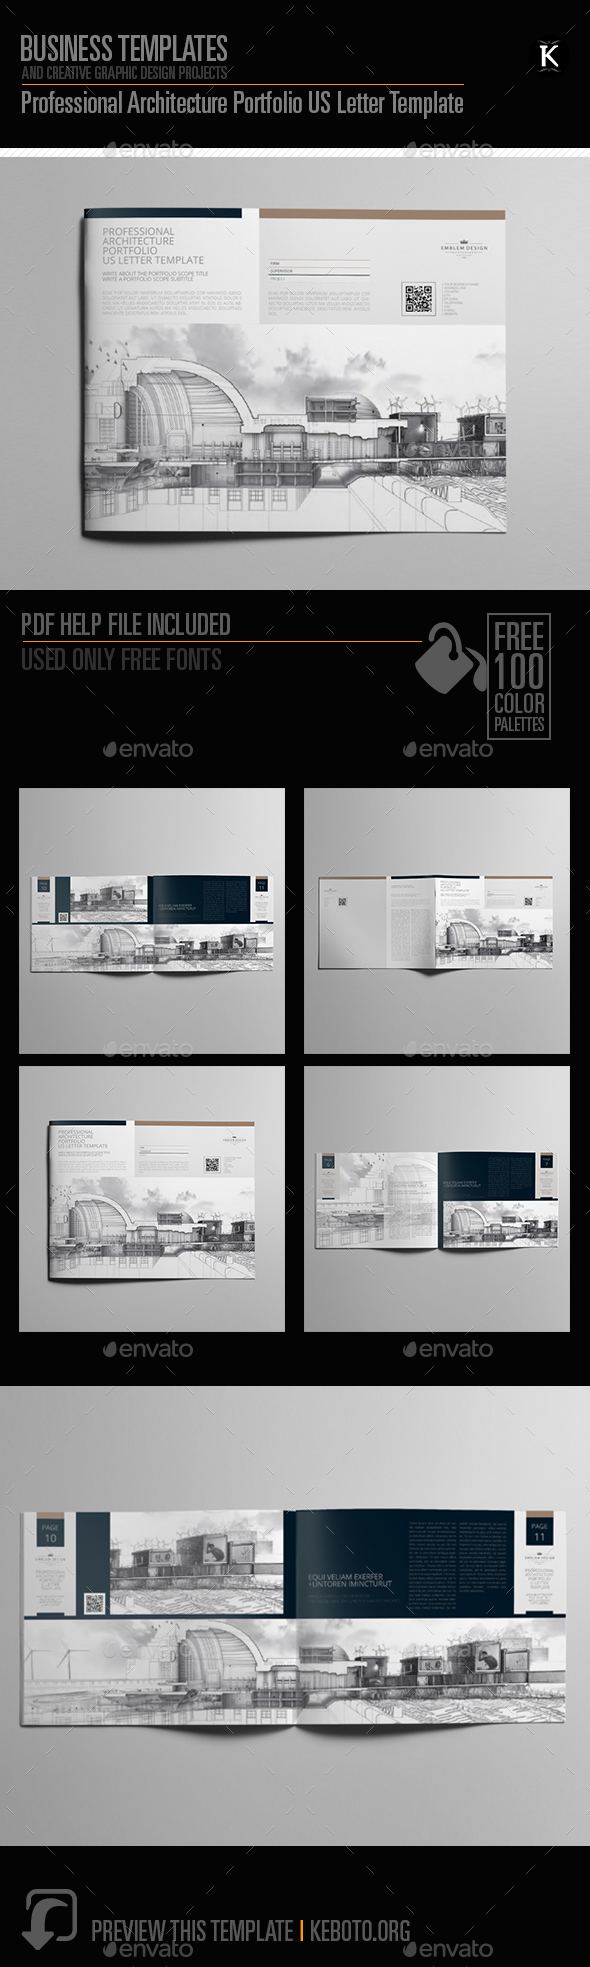 professional architecture portfolio us letter template by keboto graphicriver. Black Bedroom Furniture Sets. Home Design Ideas